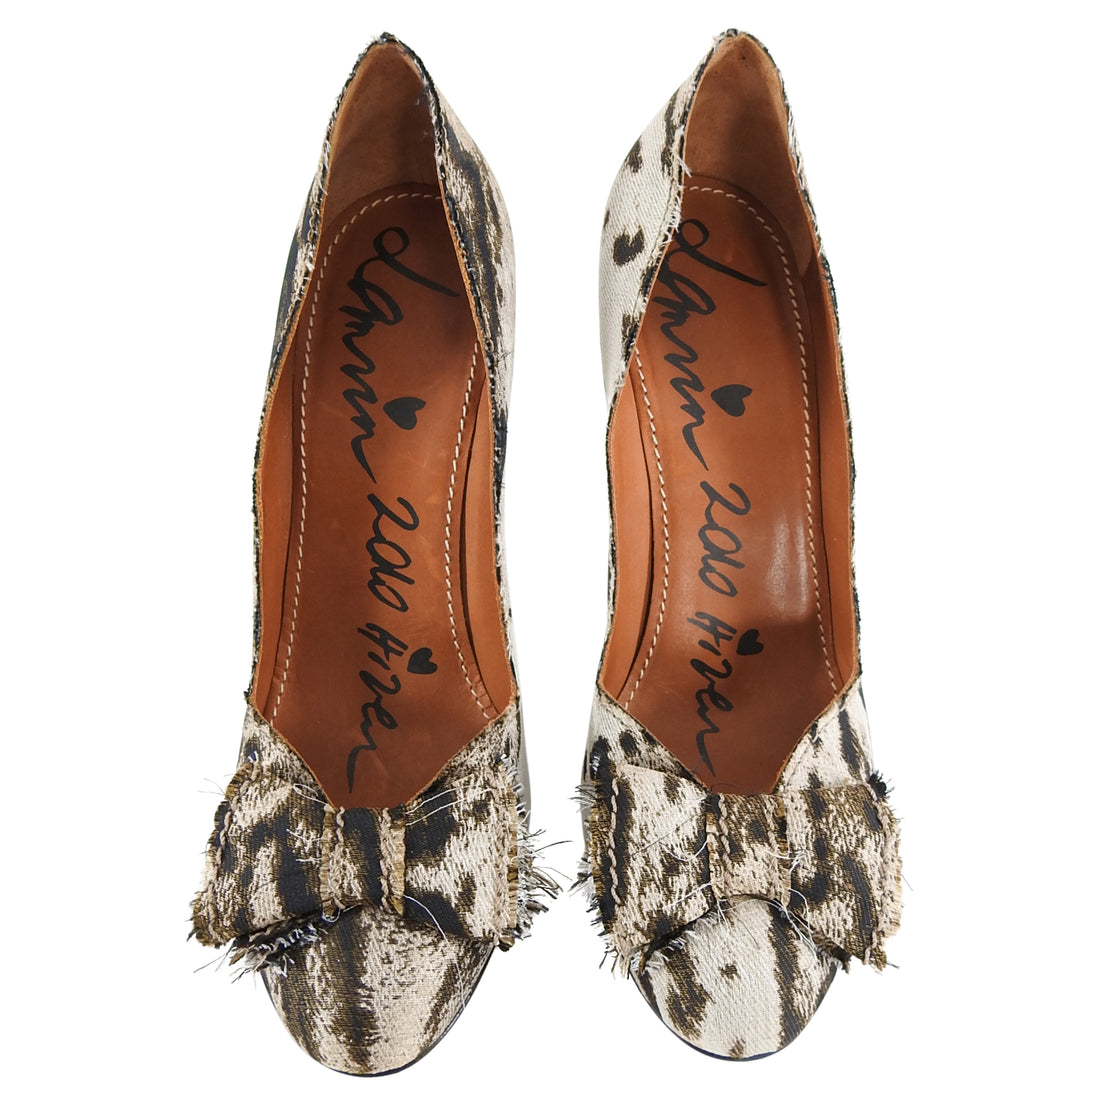 lanvin Pre-fall 2010 Fabric Animal Print Pumps